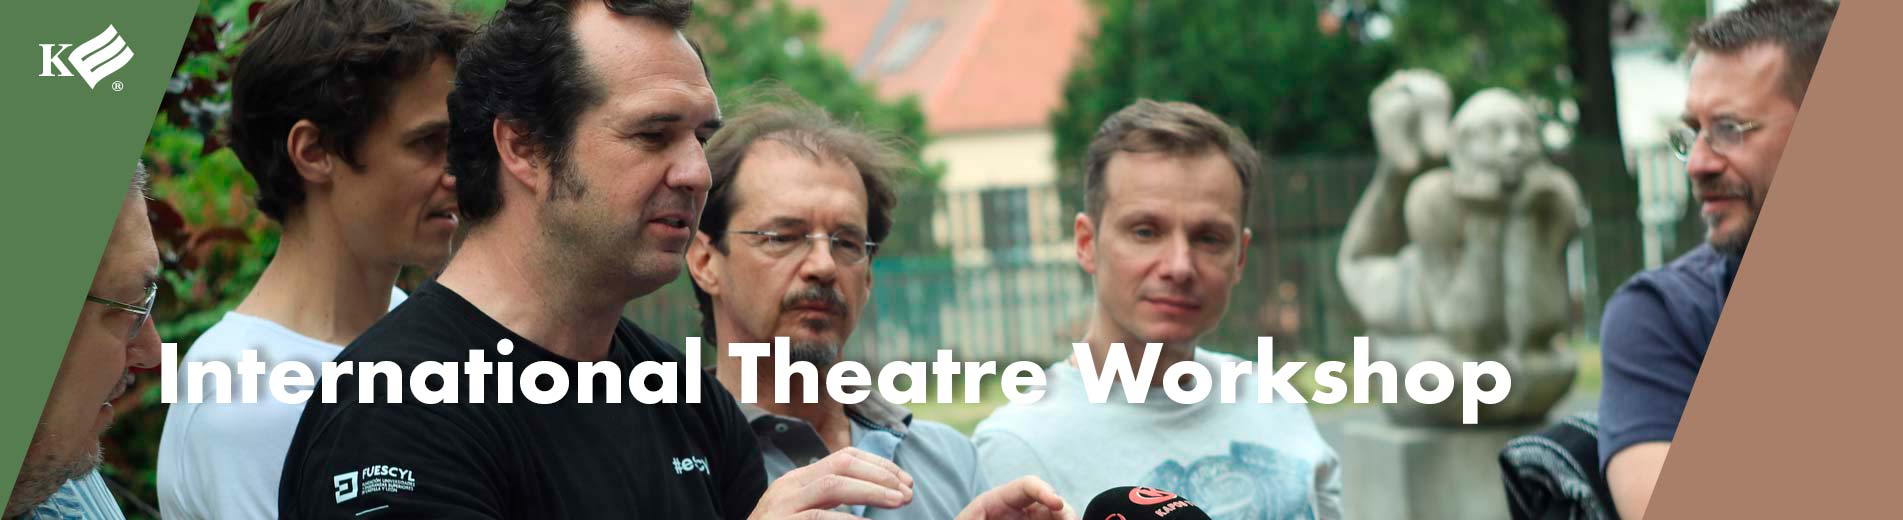 7th International Theatre Workshop